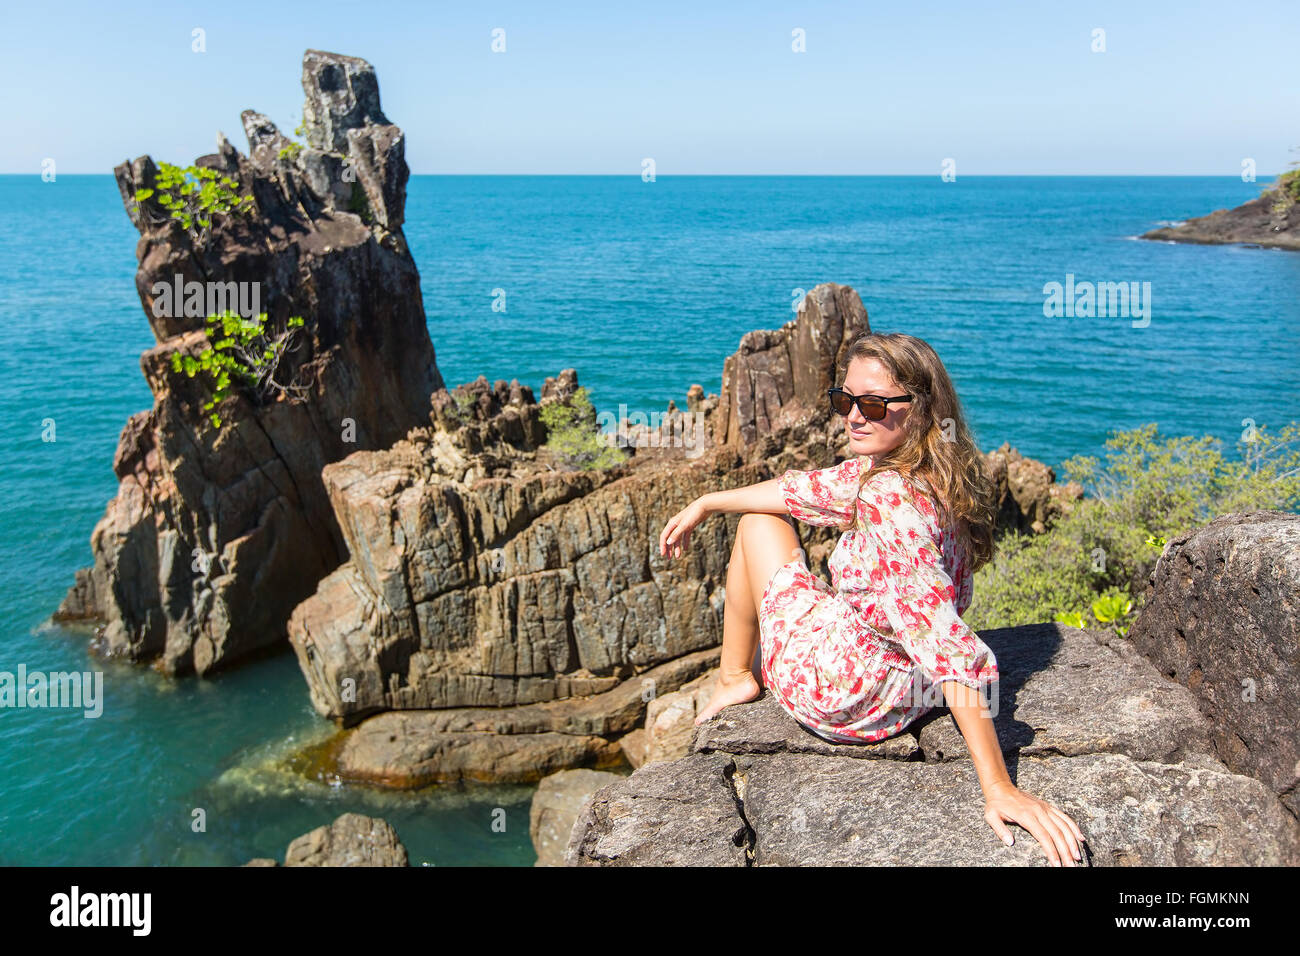 Young woman sitting on coastal rocks of Koh Chang island in Thailand. Stock Photo